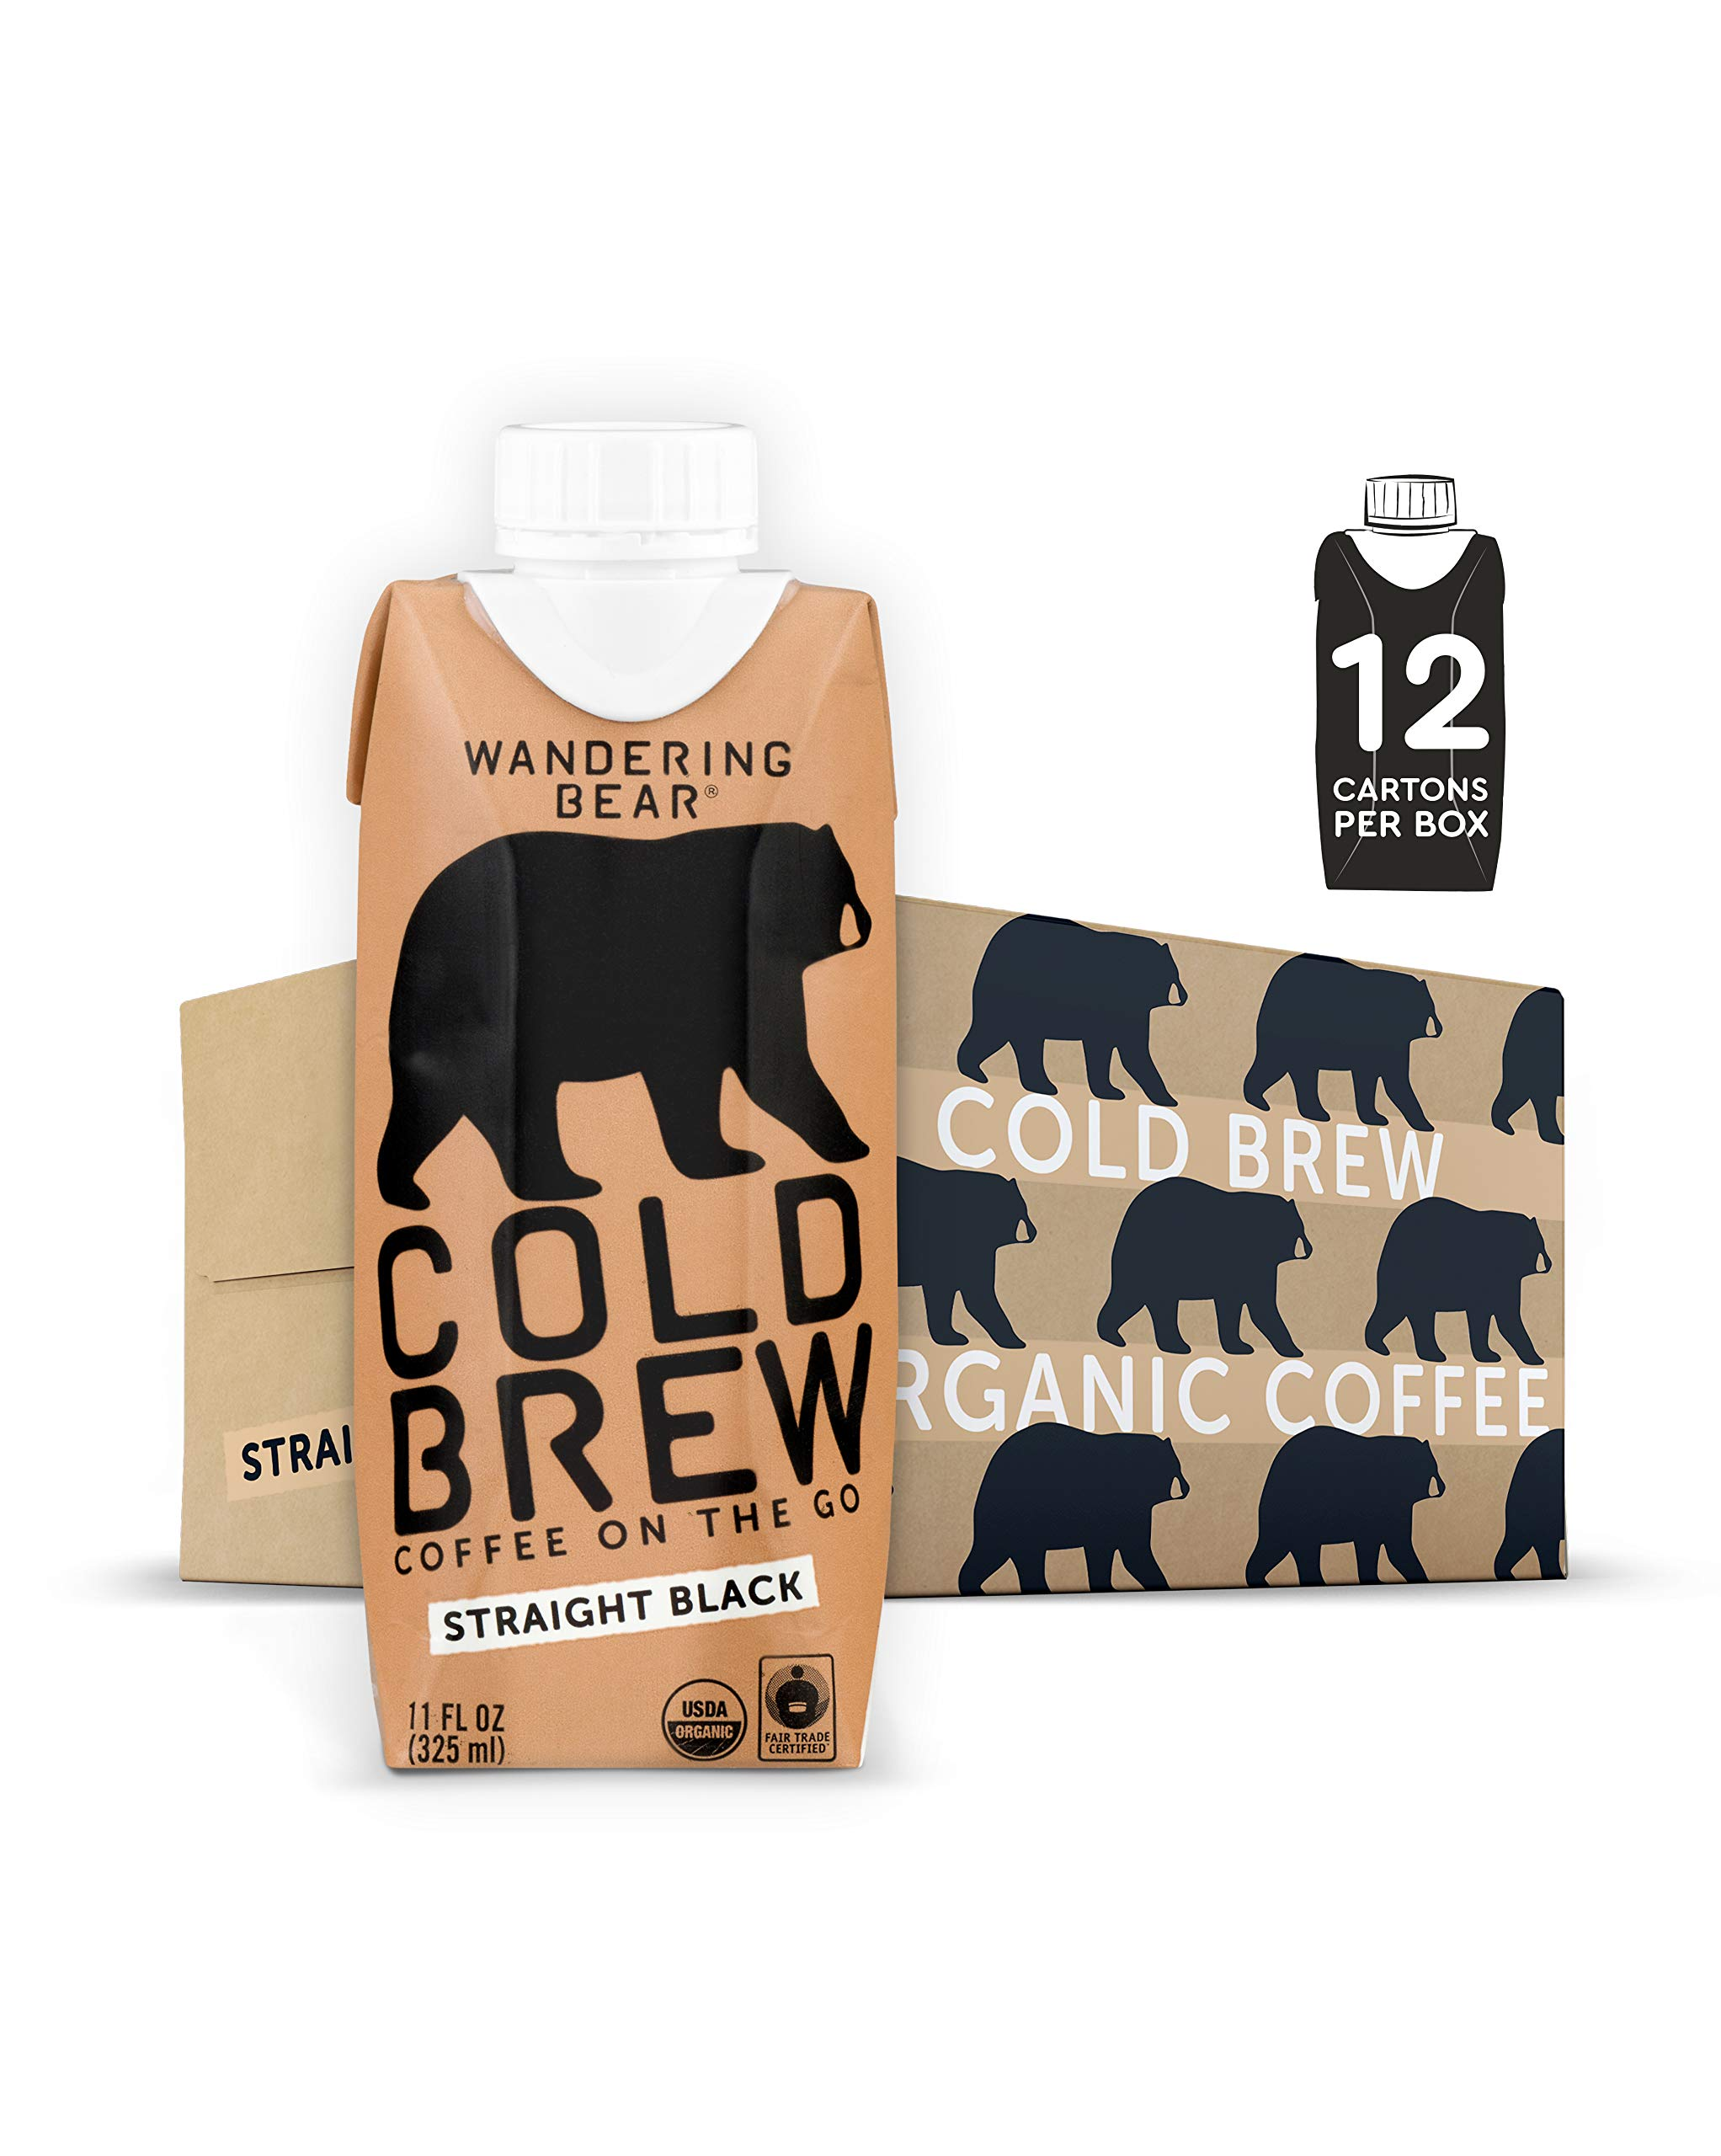 Wandering Bear Organic Cold Brew Coffee On-the-Go 11 oz Carton, Straight Black, No Sugar, Ready to Drink, Not a Concentrate (Pack of 12)